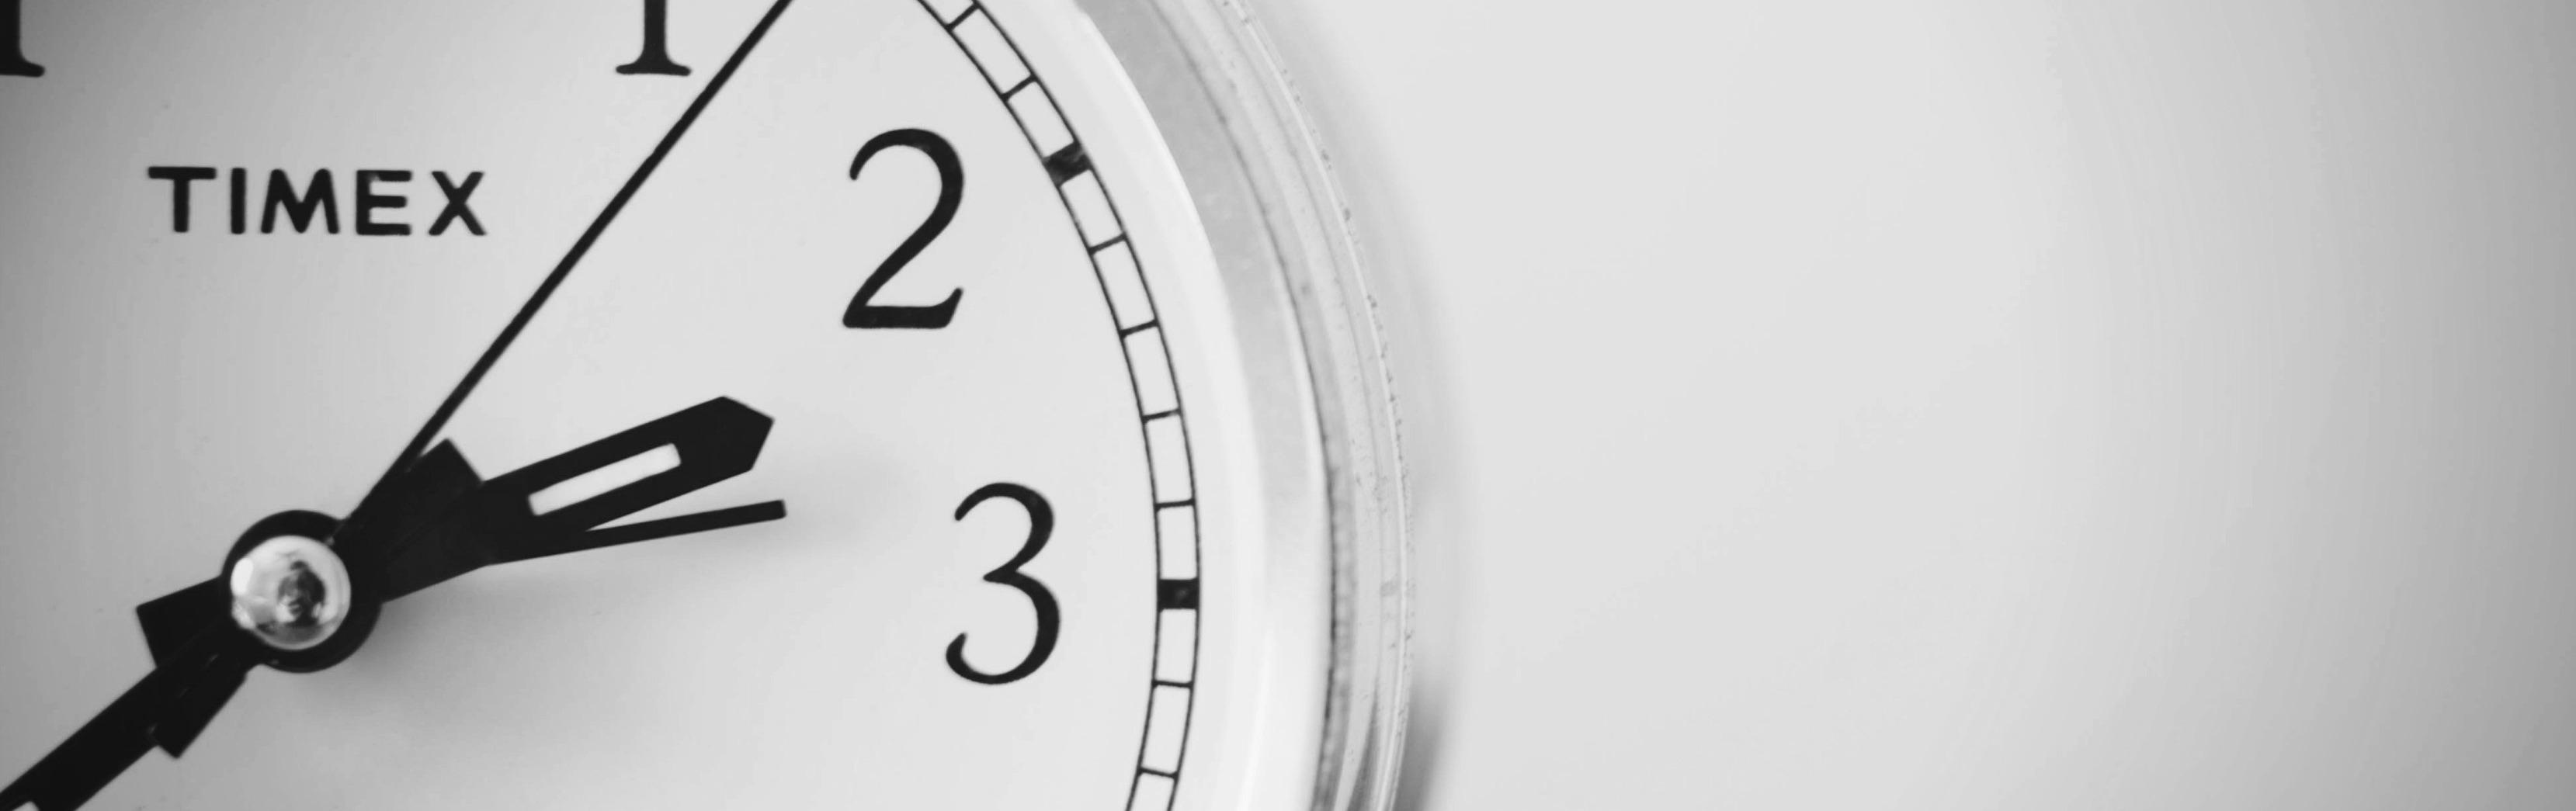 making better choices with your time